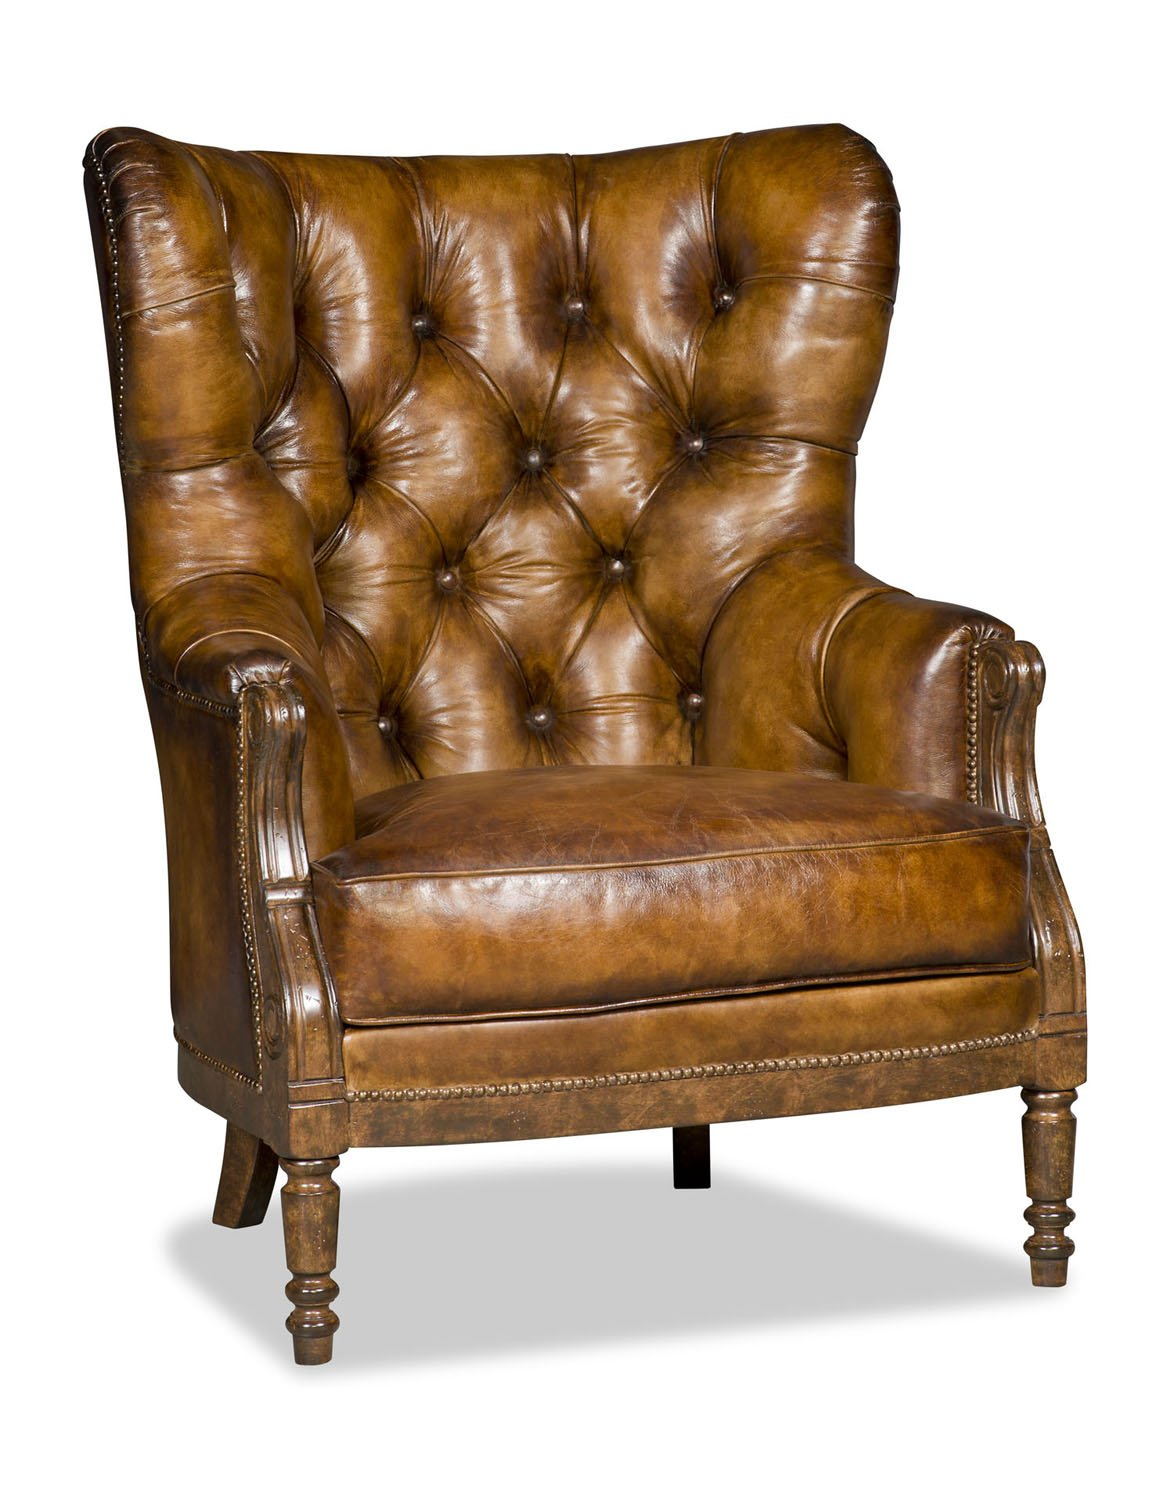 Coby Chair in Chestnut Tufted Leather